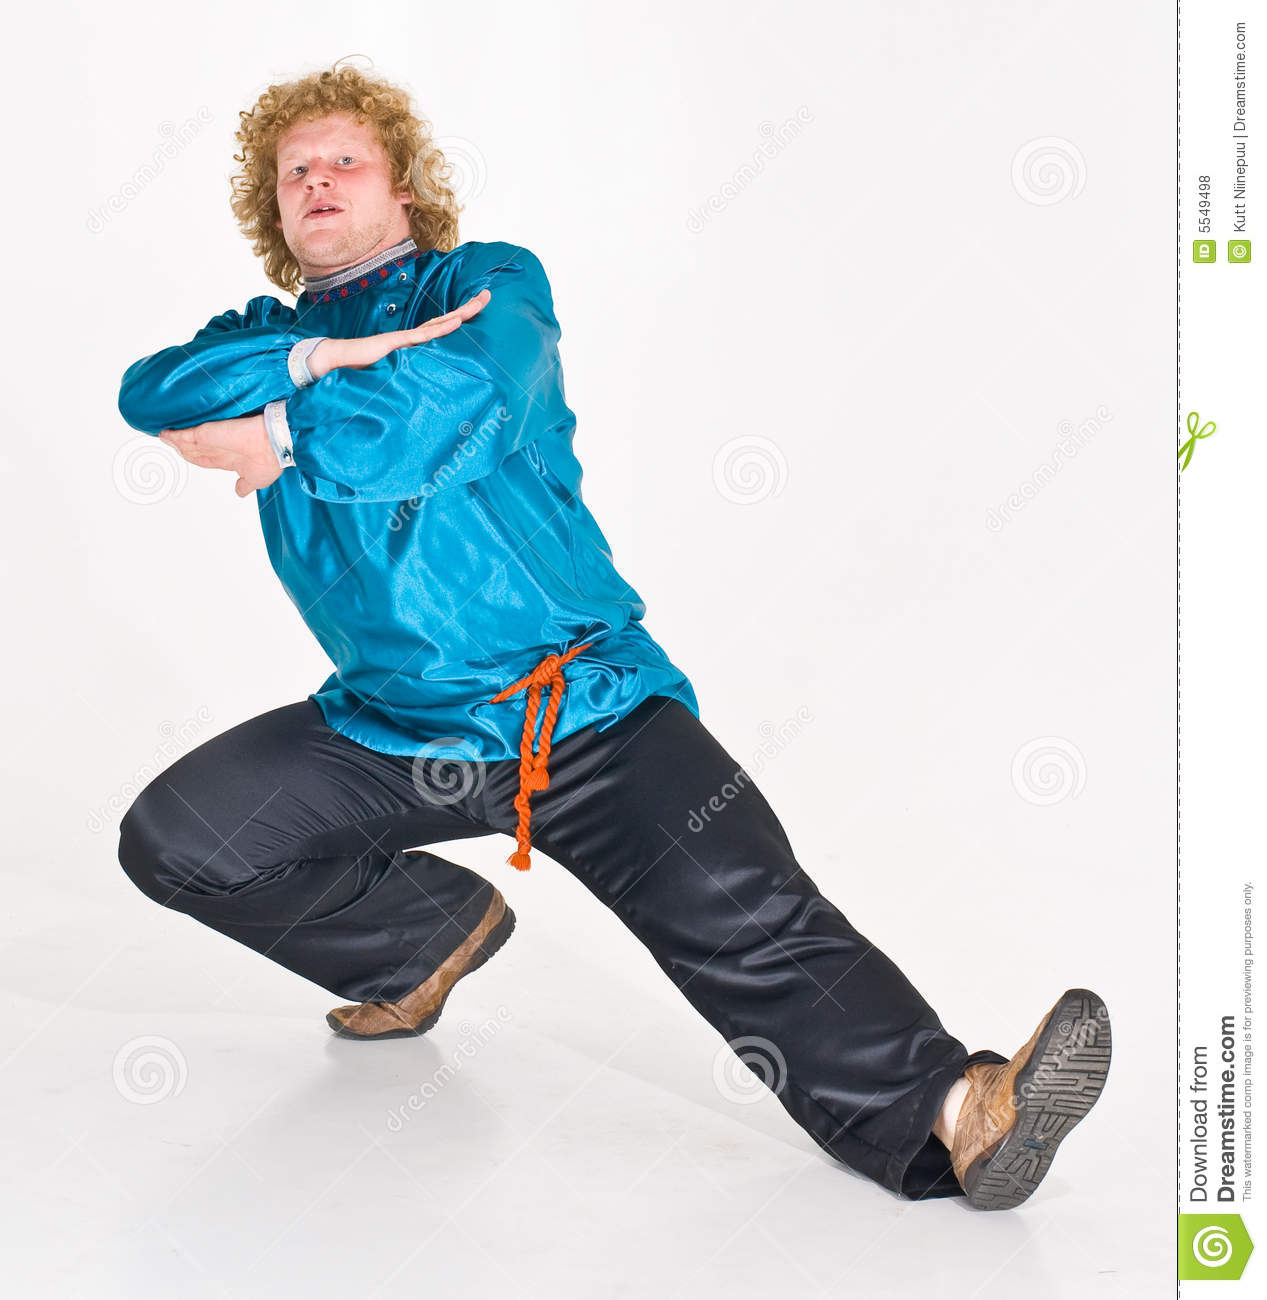 Russian Man Dancing stock photo. Image of expressions